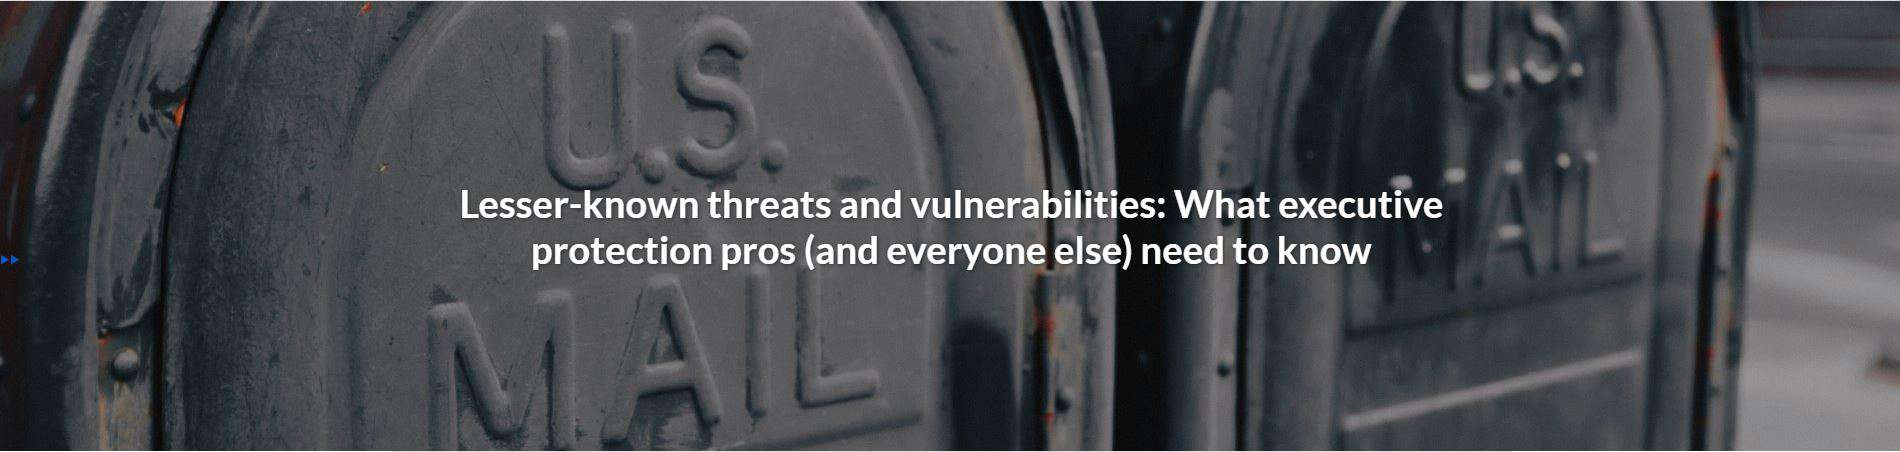 Lesser-known threats and vulnerabilities: What executive protection pros (and everyone else) need to know